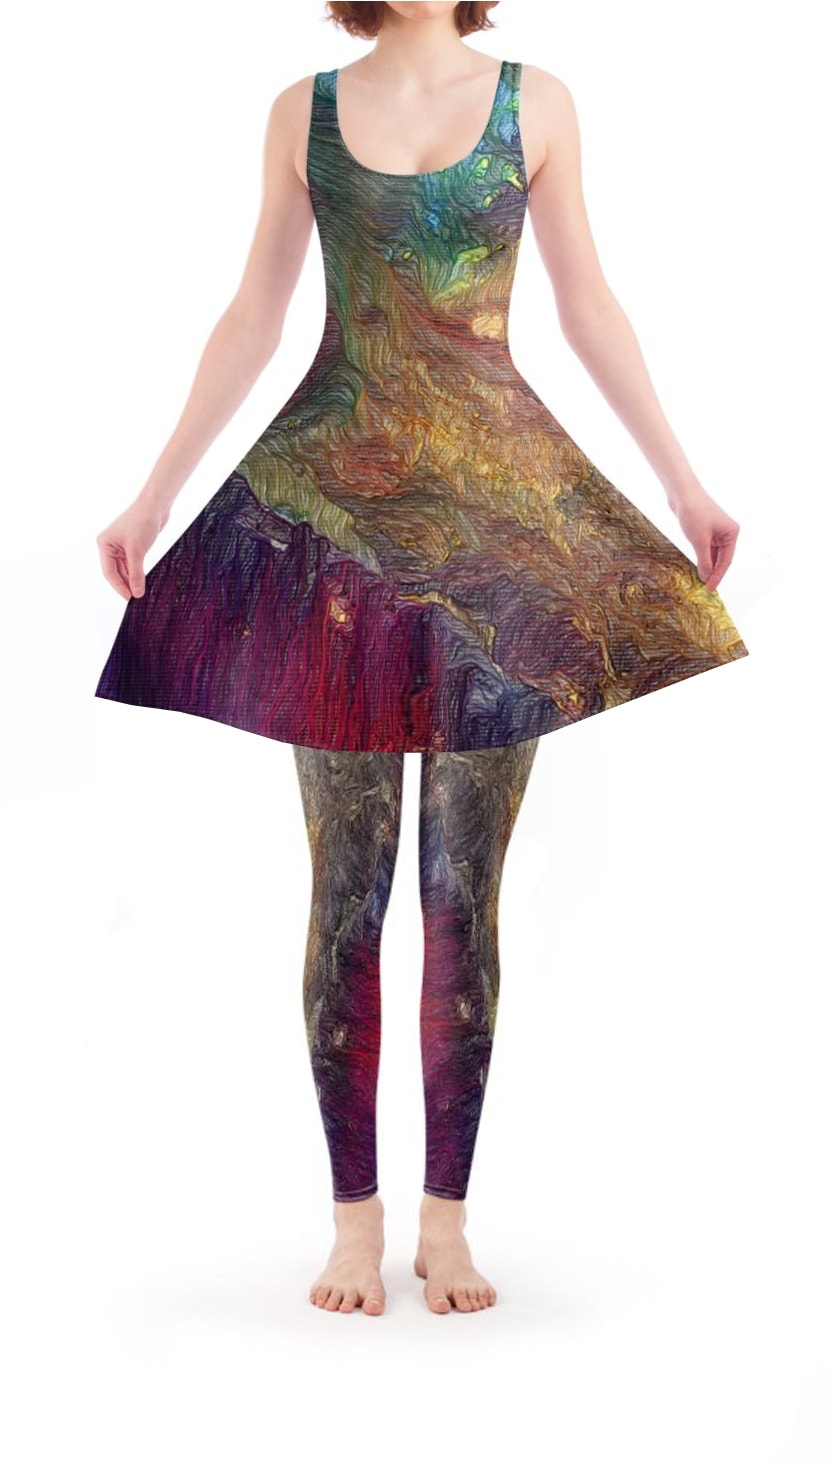 pure-abstract-outfit.jpg